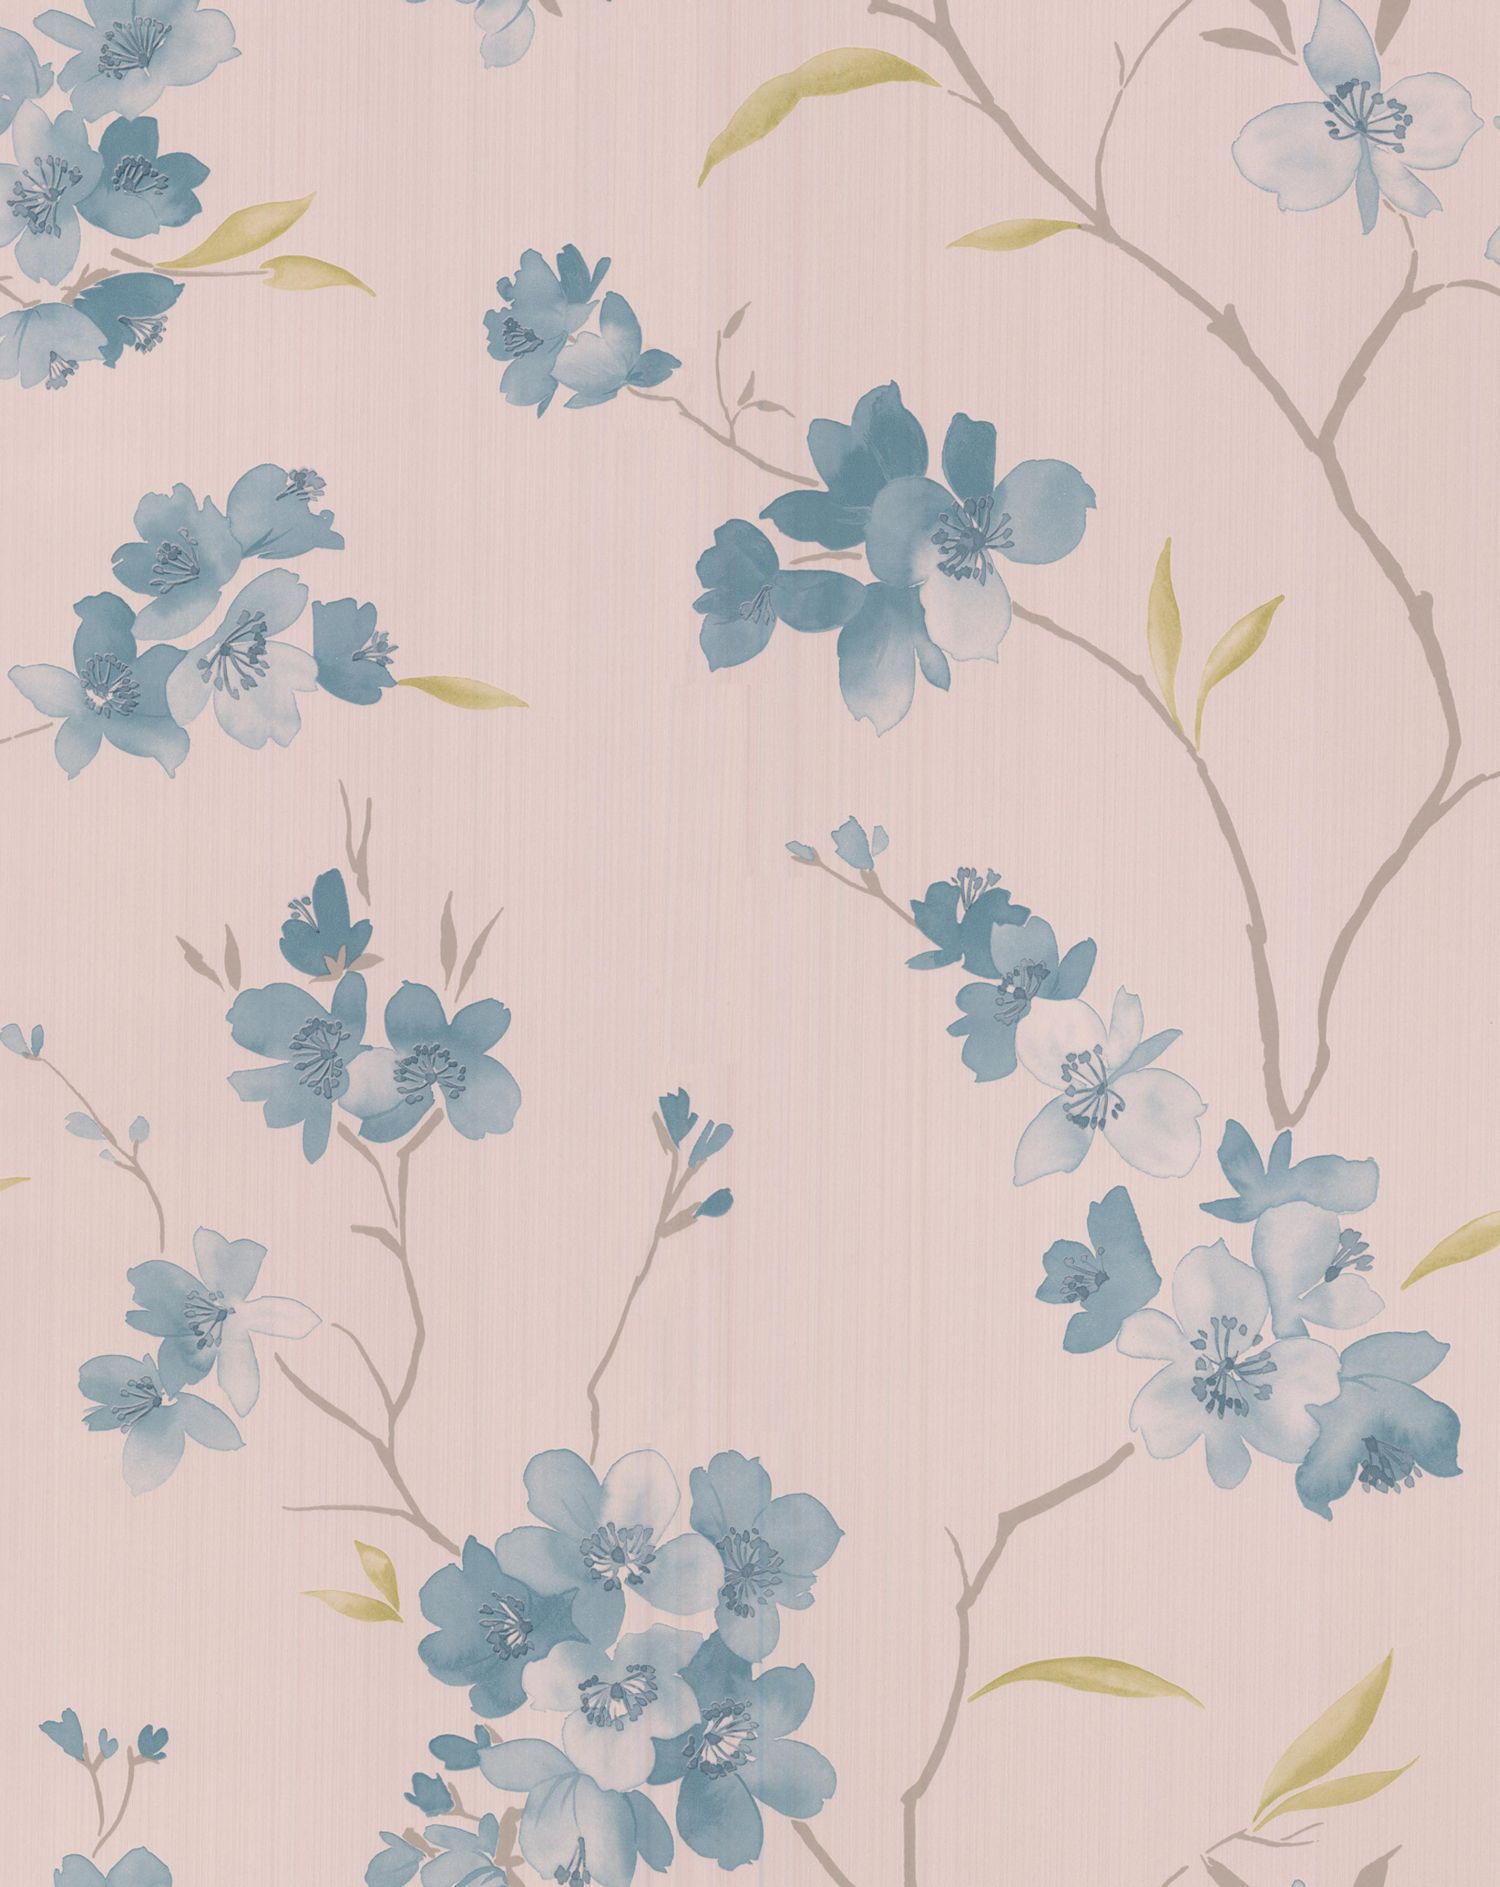 Teal enthrall wallpaper